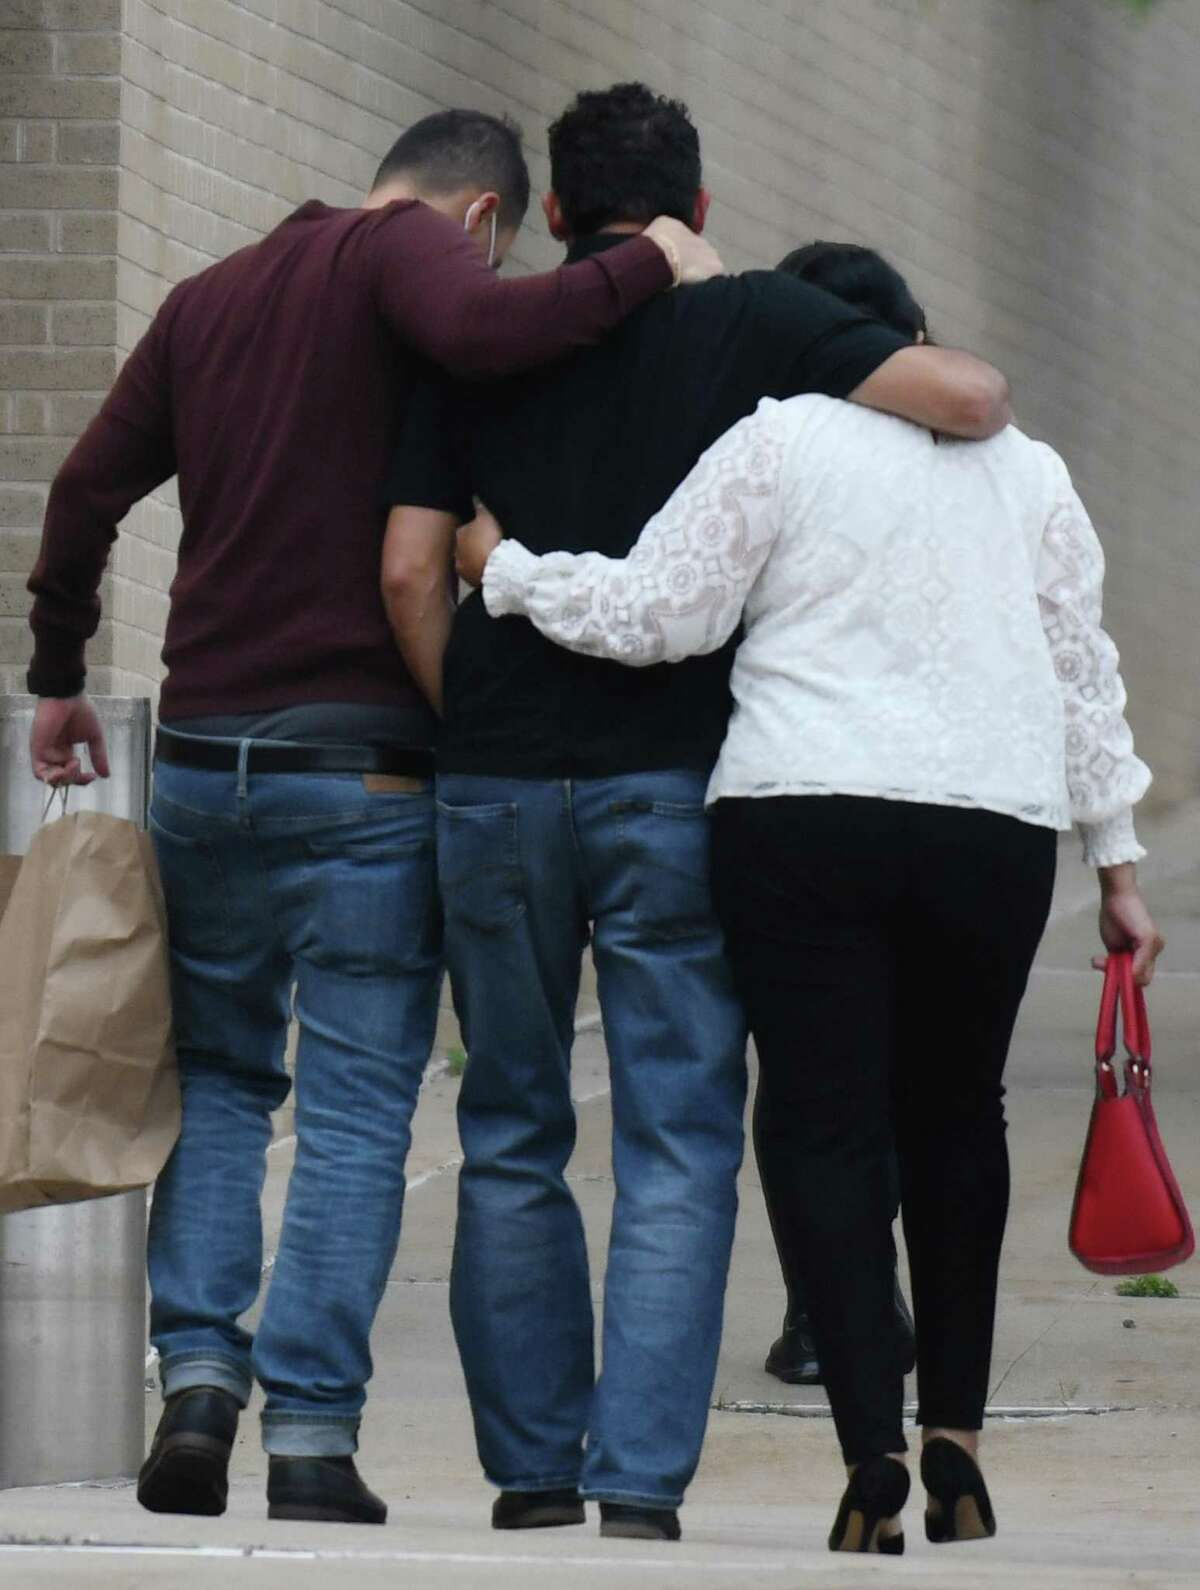 Family of the late Valerie Reyes exit court after the sentencing of Javier Da Silva.